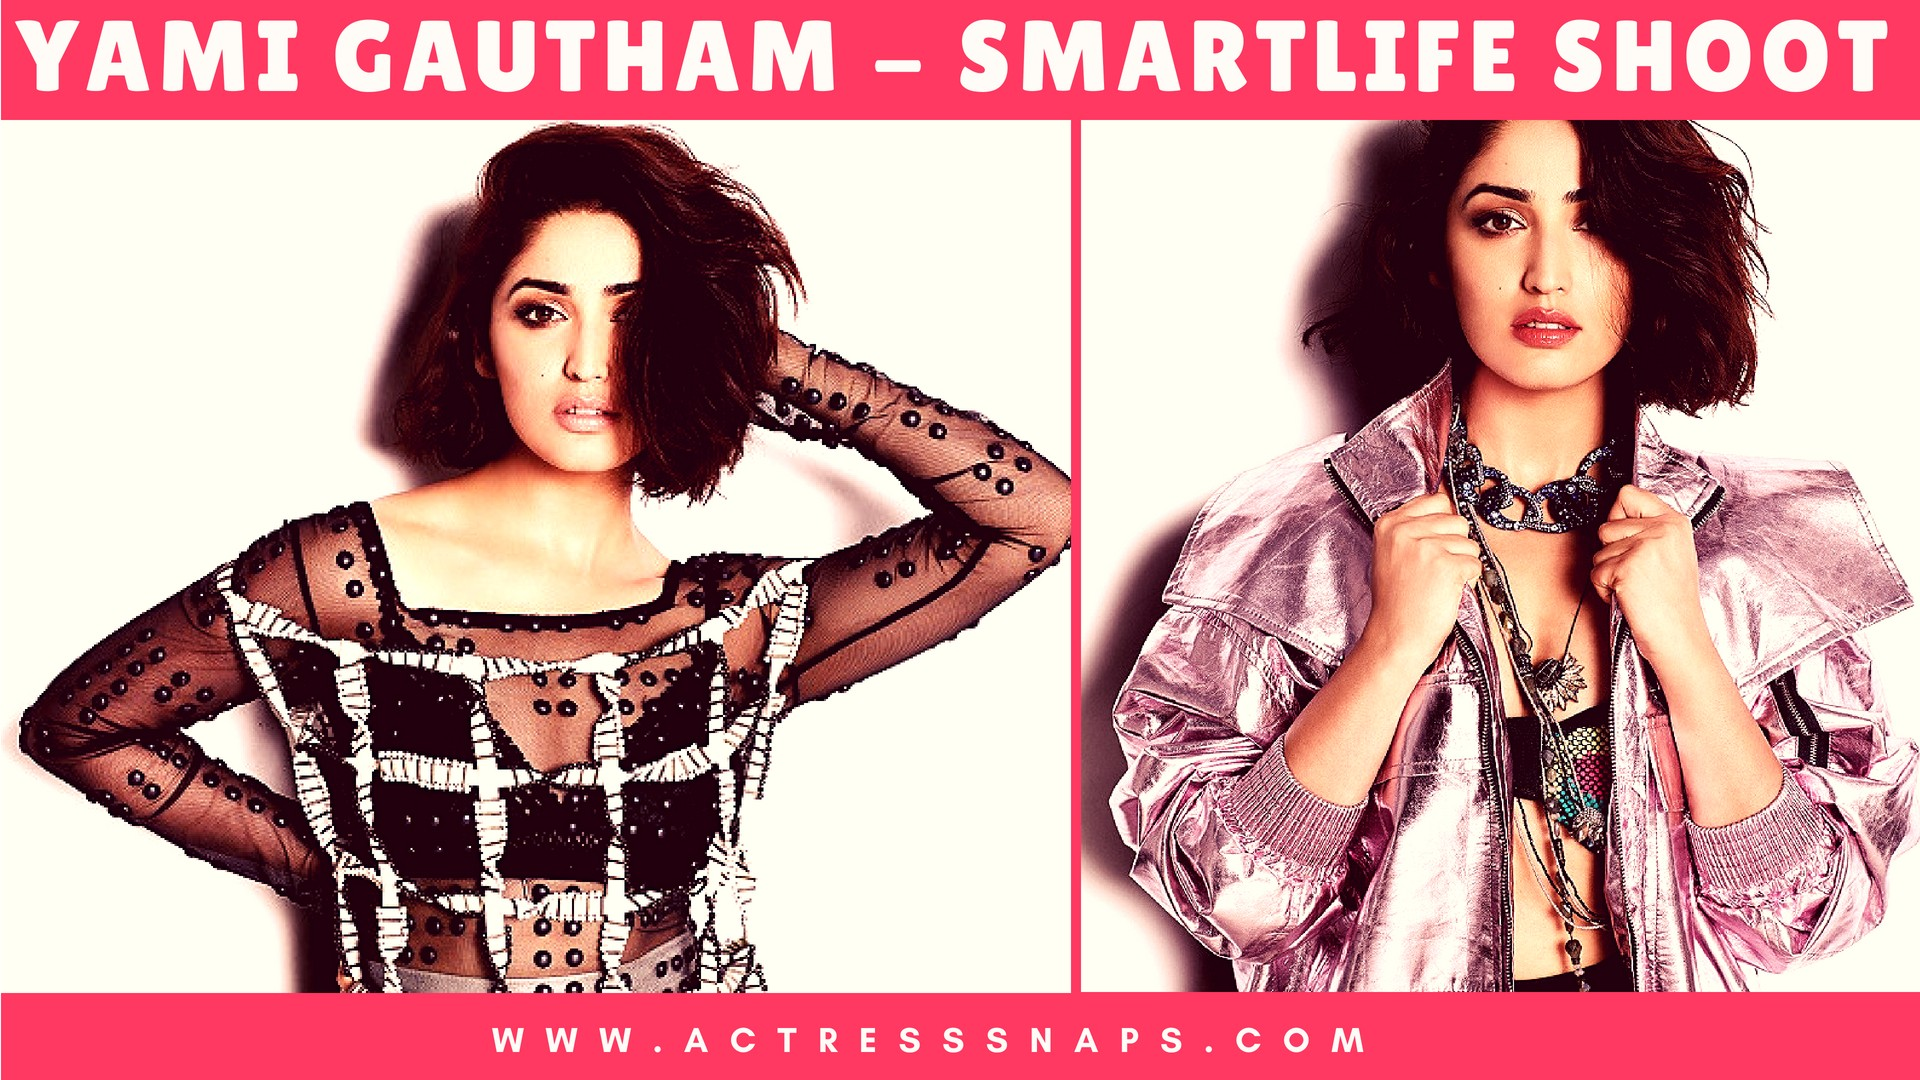 Yami Gautham in Smart Life Magazine - Sexy Actress Pictures | Hot Actress Pictures - ActressSnaps.com